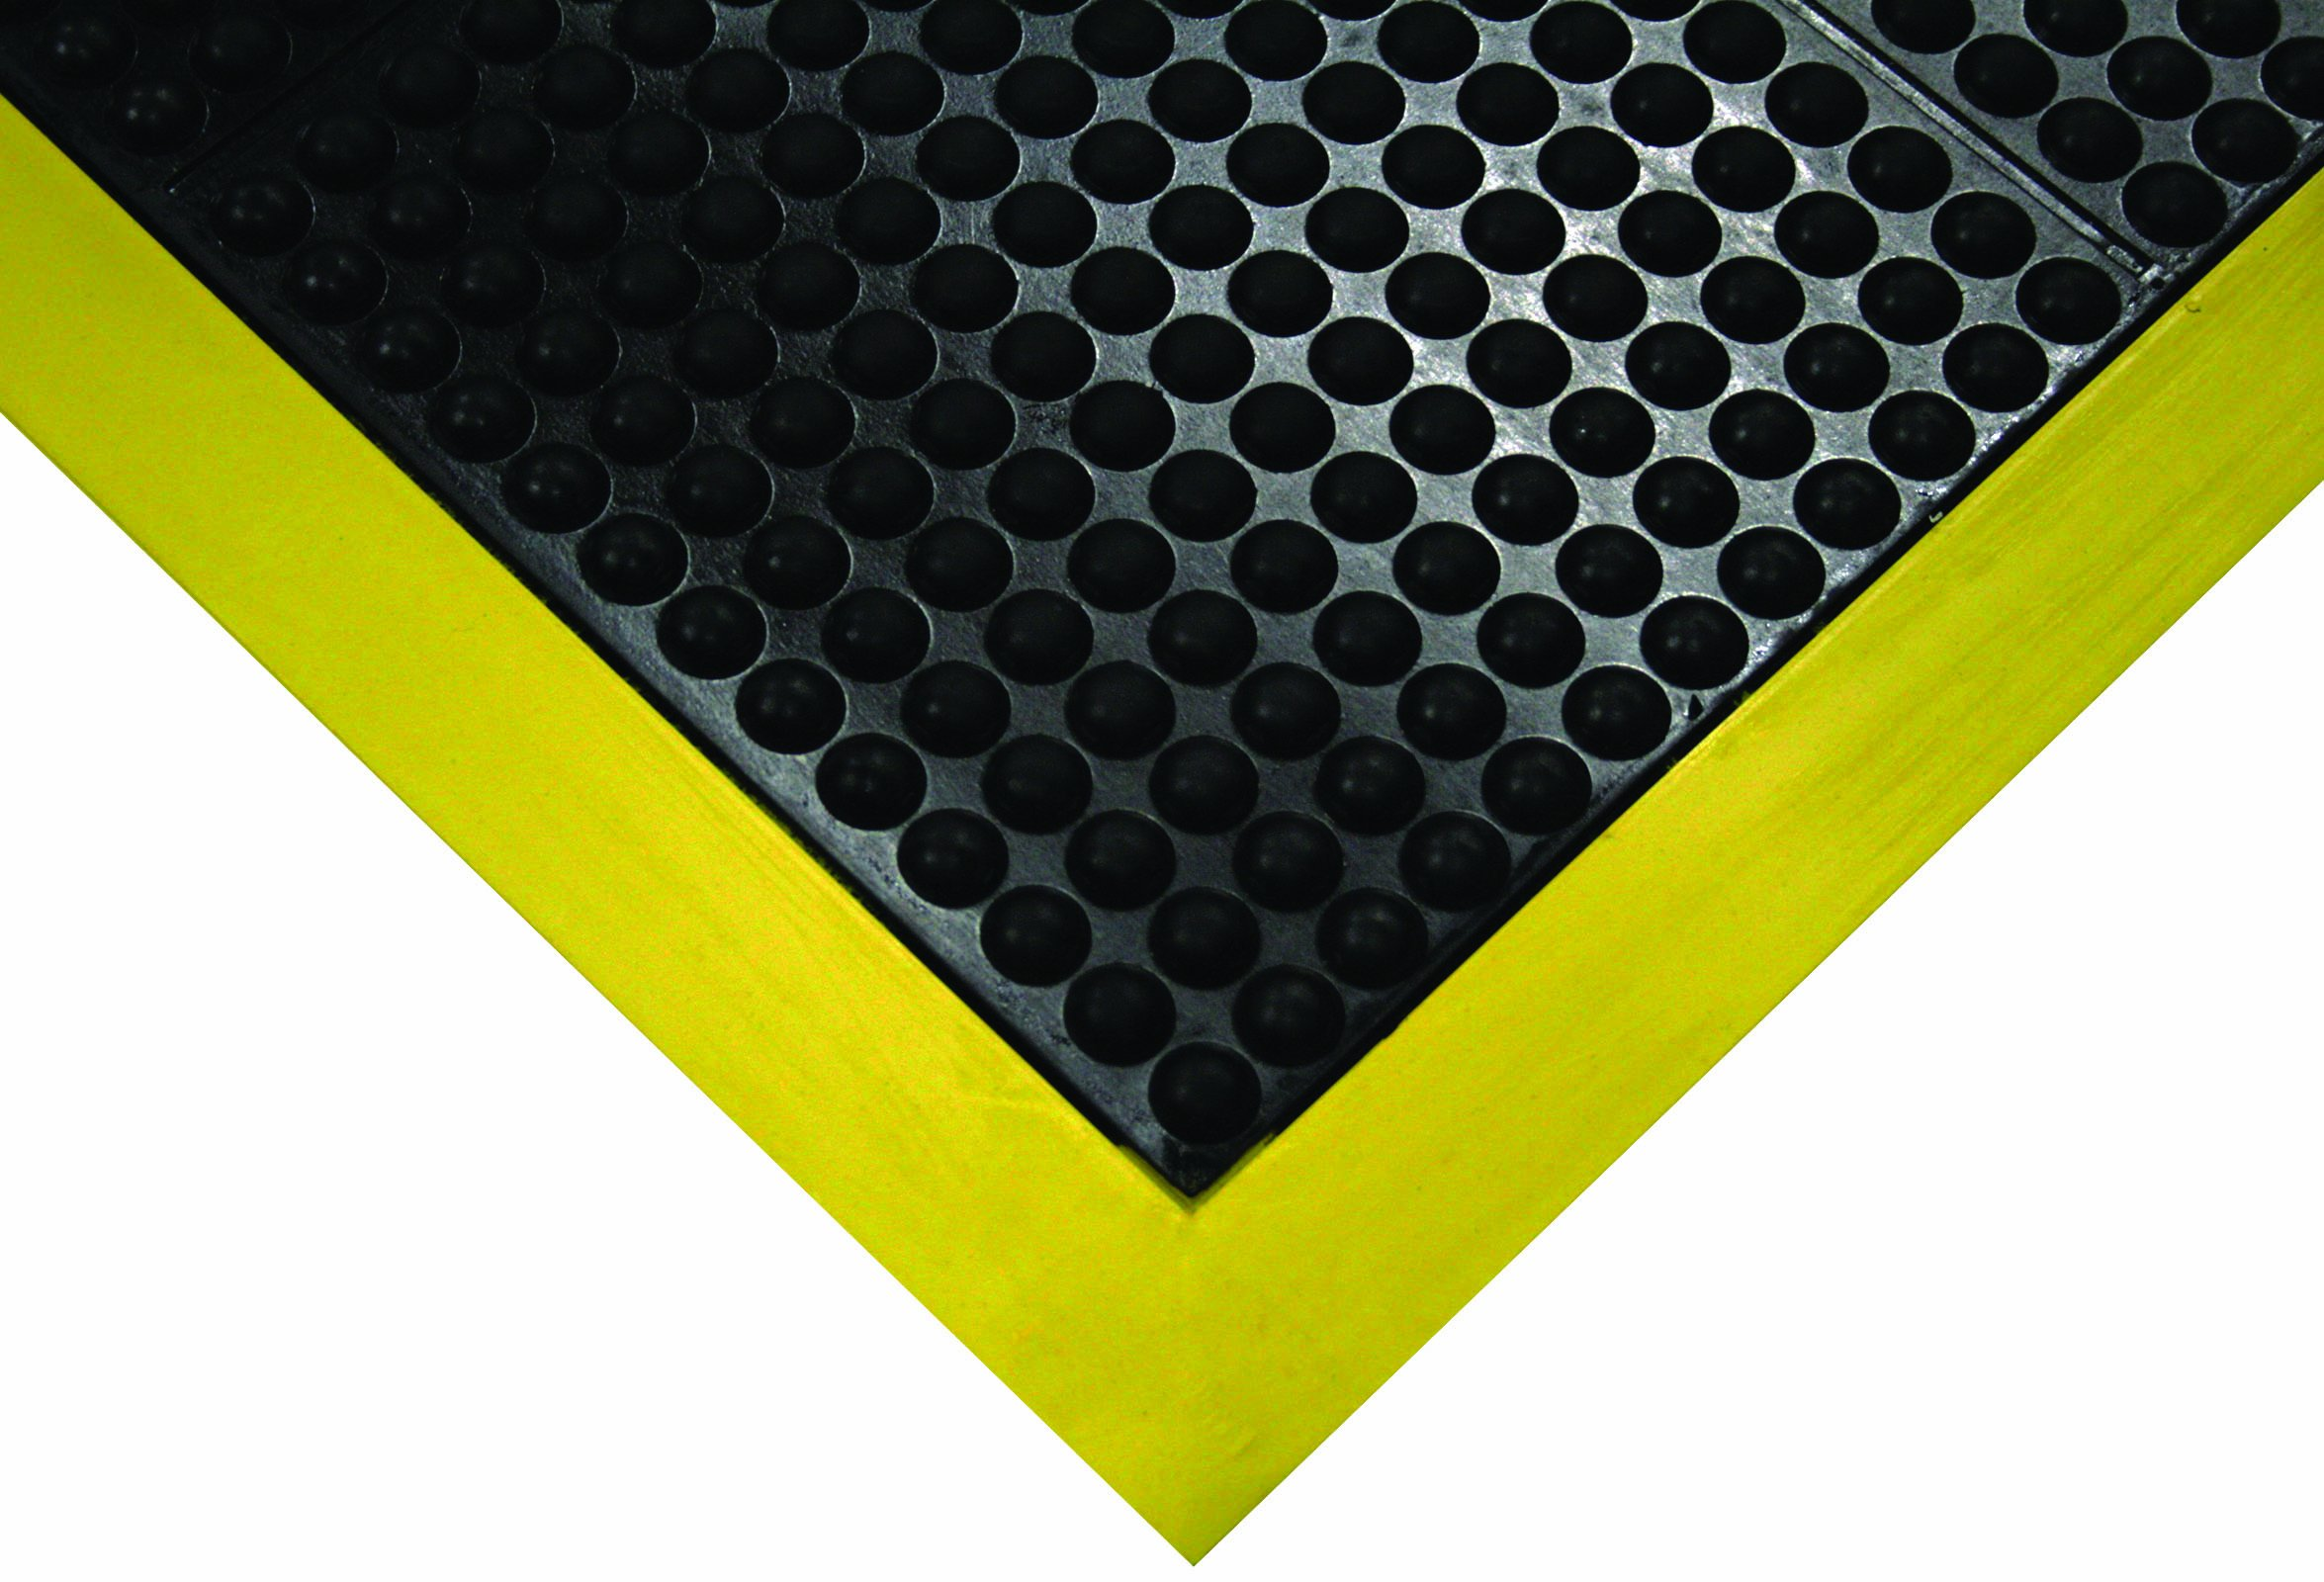 Wearwell Natural Rubber 454 OrthoSand Medium Duty Anti-Fatigue Mat, Safety Beveled Integral Molded Border Edges, for Dry Areas, 2' Width x 3' Length x 1/2'' Thickness, Black/Yellow by Wearwell